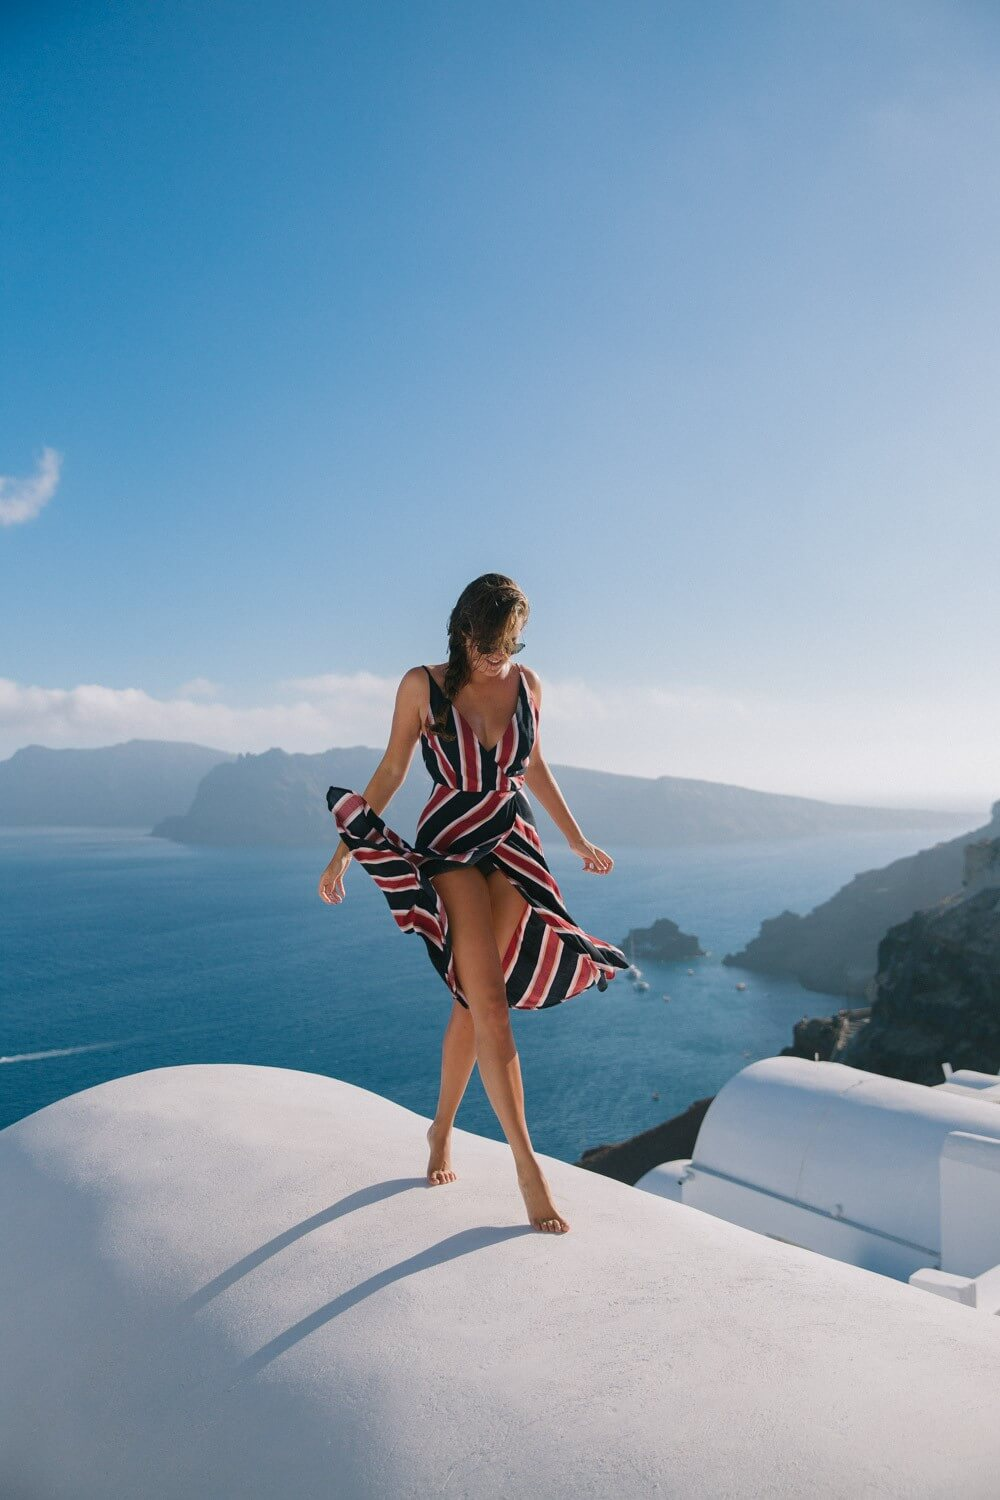 Wrap yourself in the striped red-blue dress on the top of the white house in Santorini. #summerstyle #summerfashion